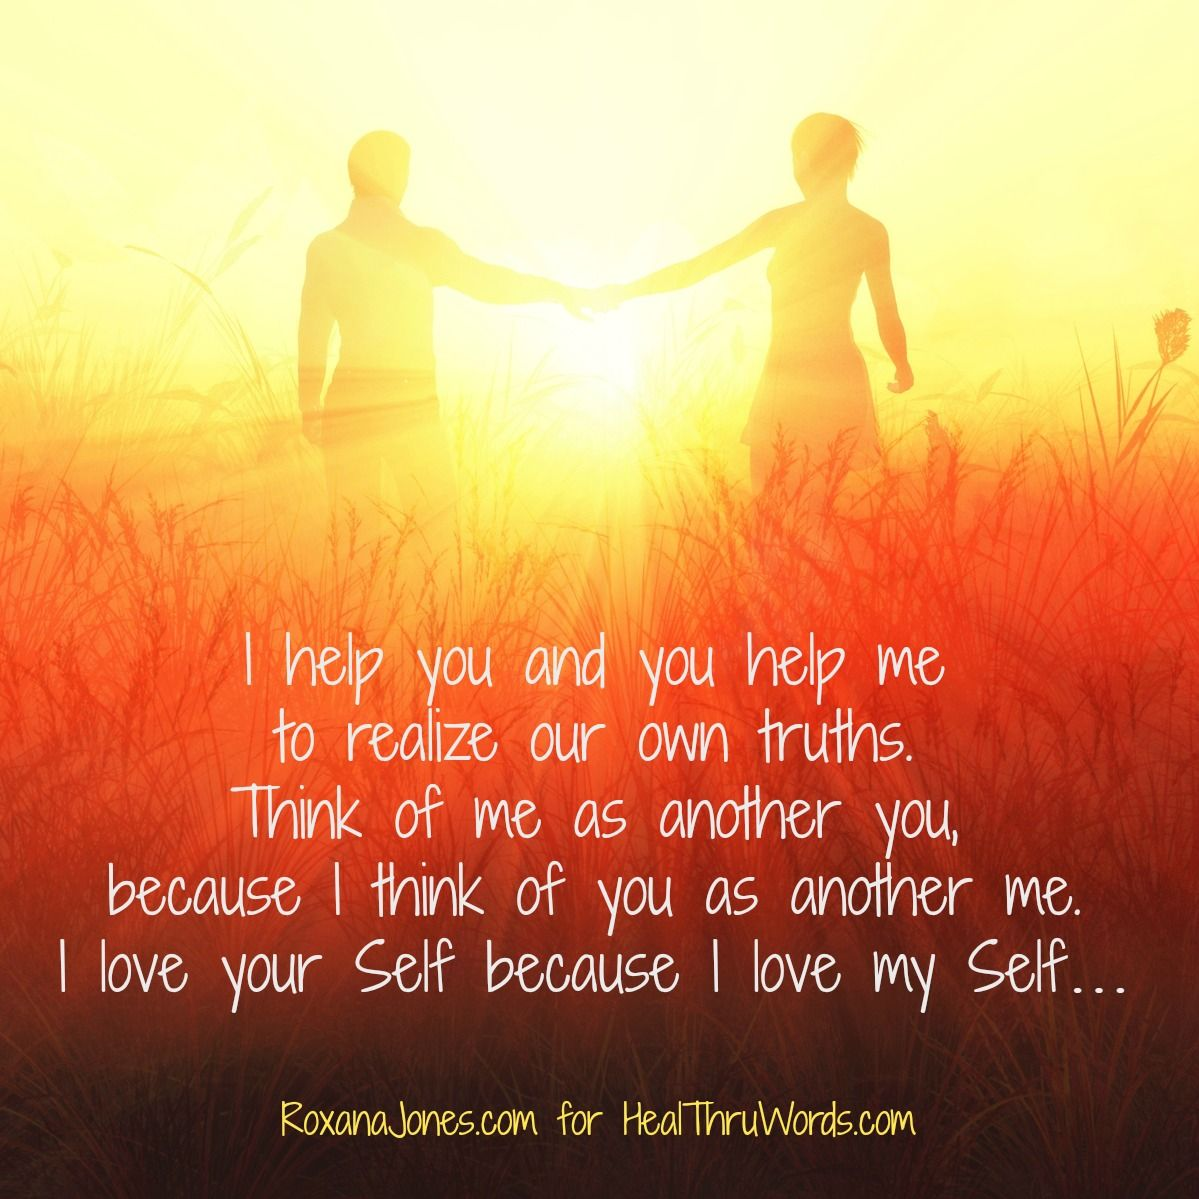 Daily Inspirational Messages I Love Your Self Because I Love My Self… Httproxanajones